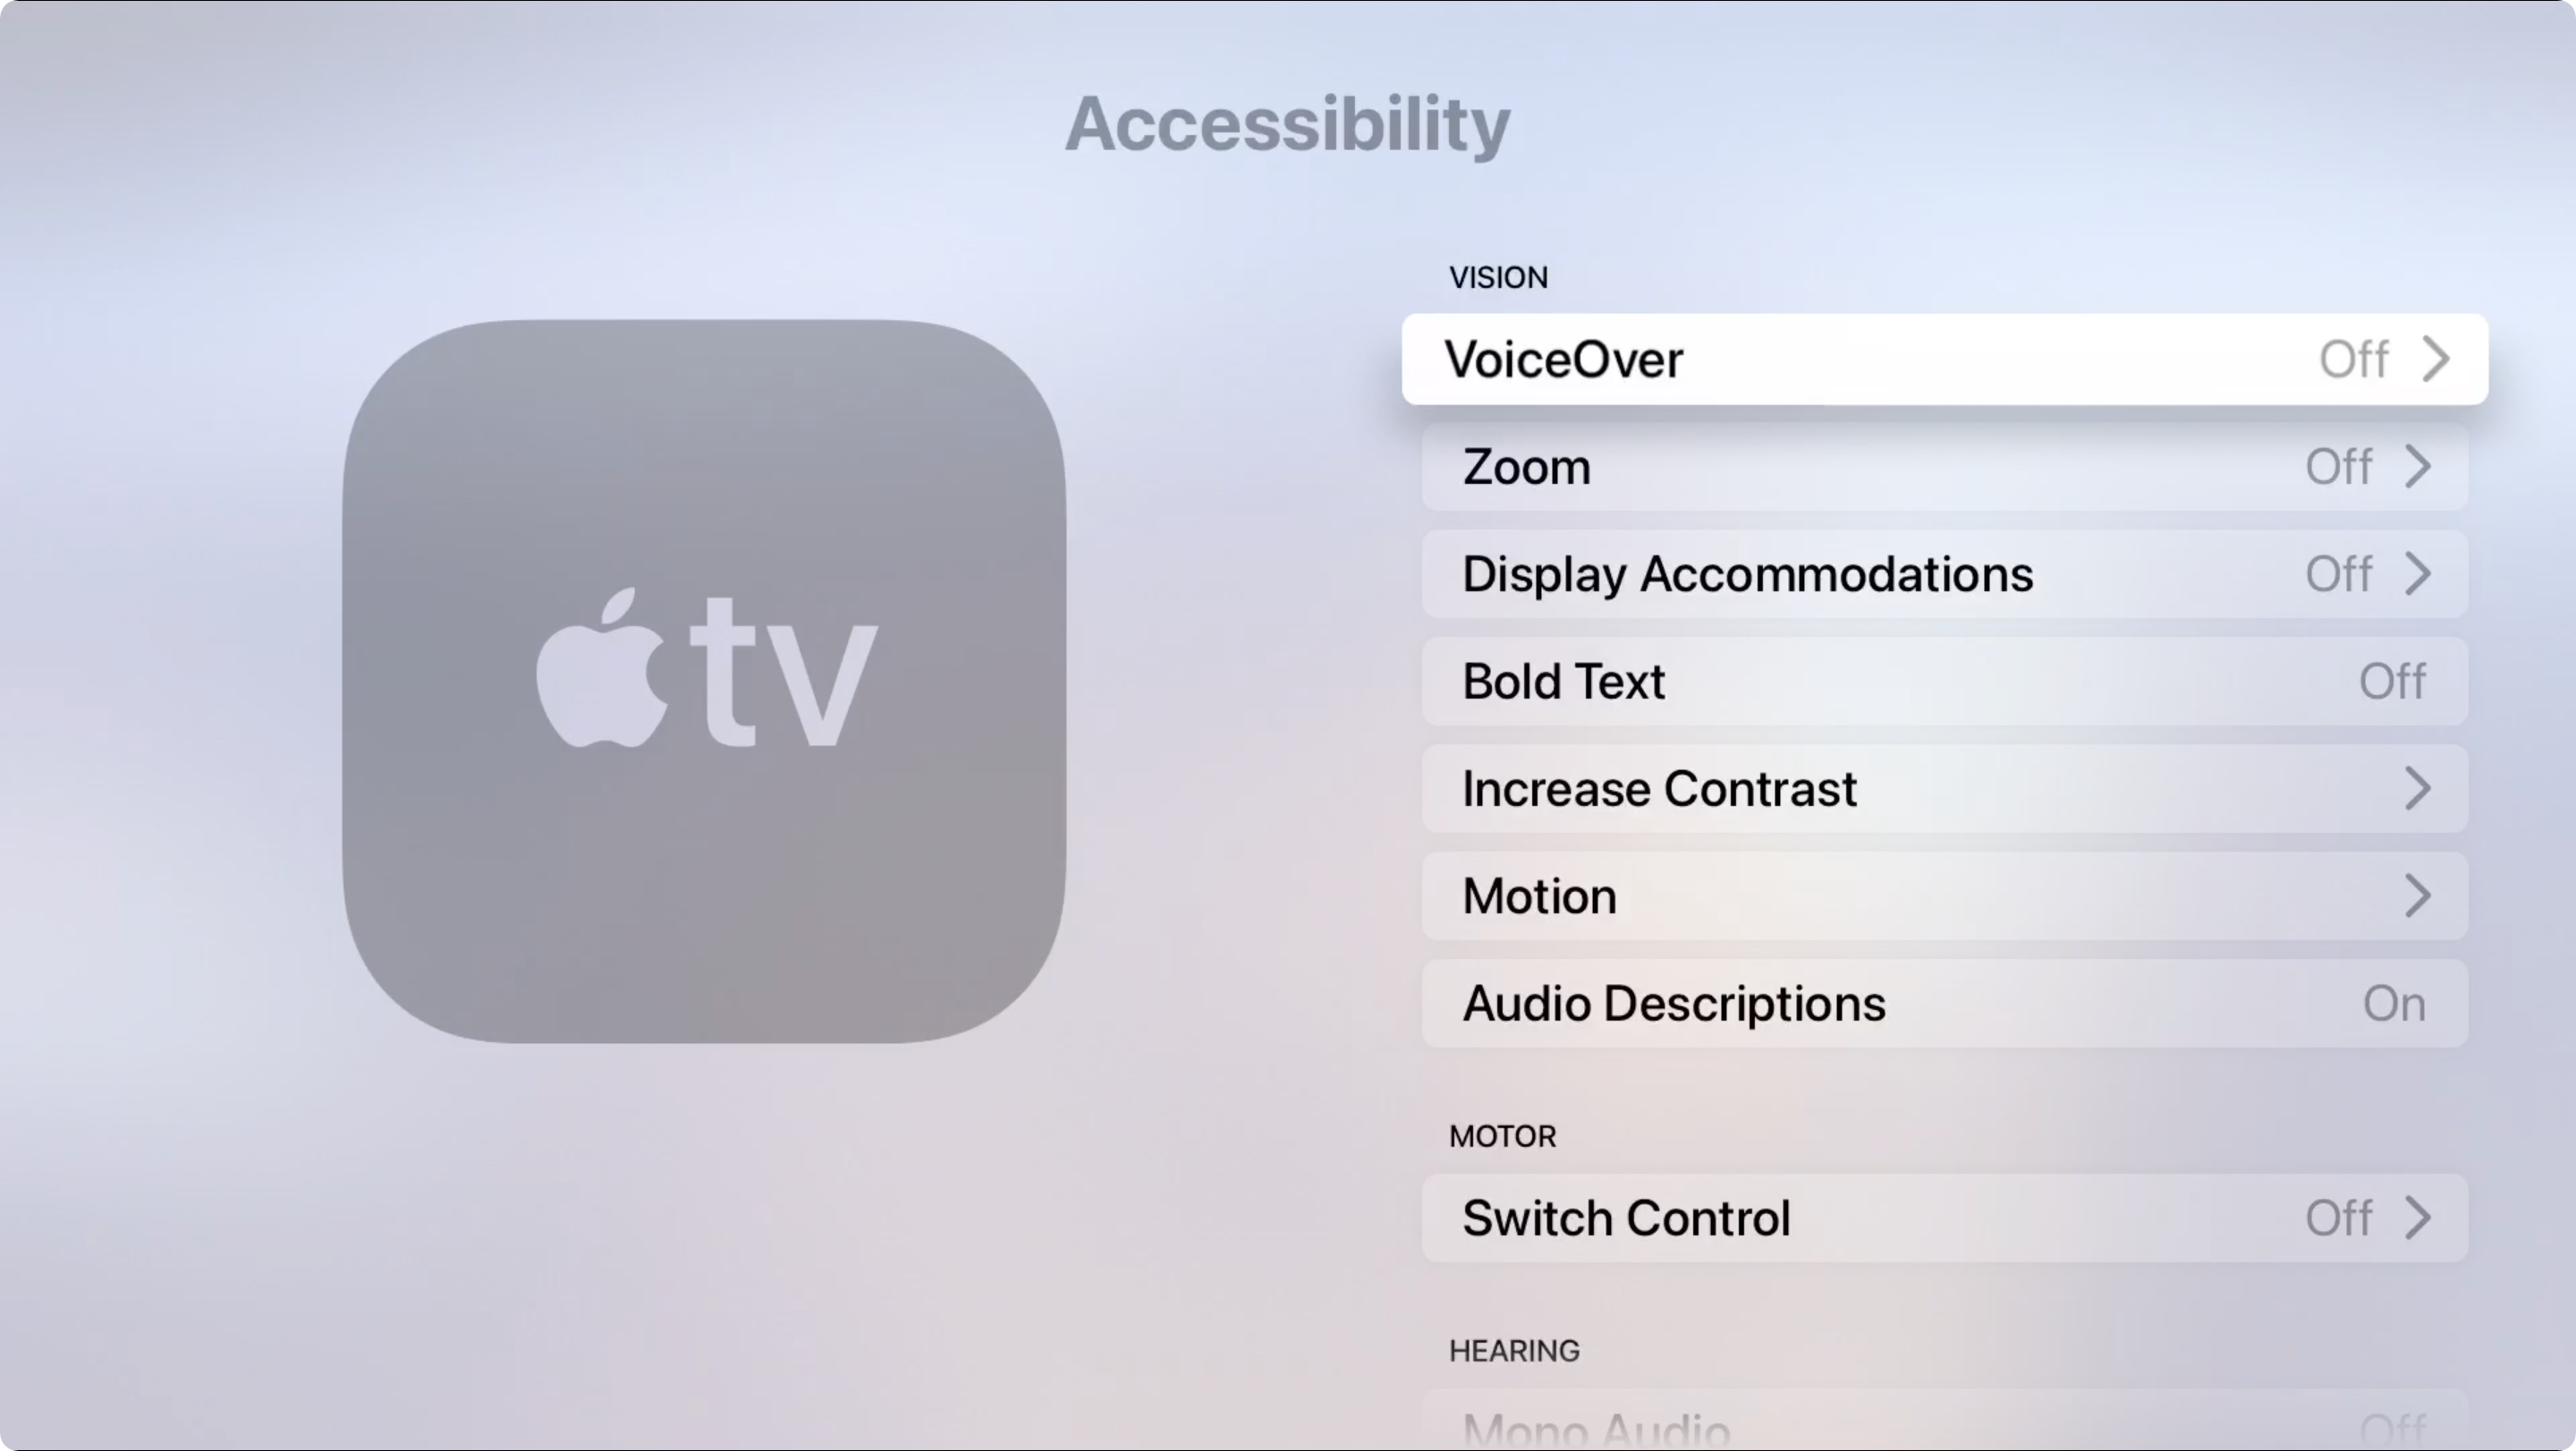 Apple TV Accessibility Vision